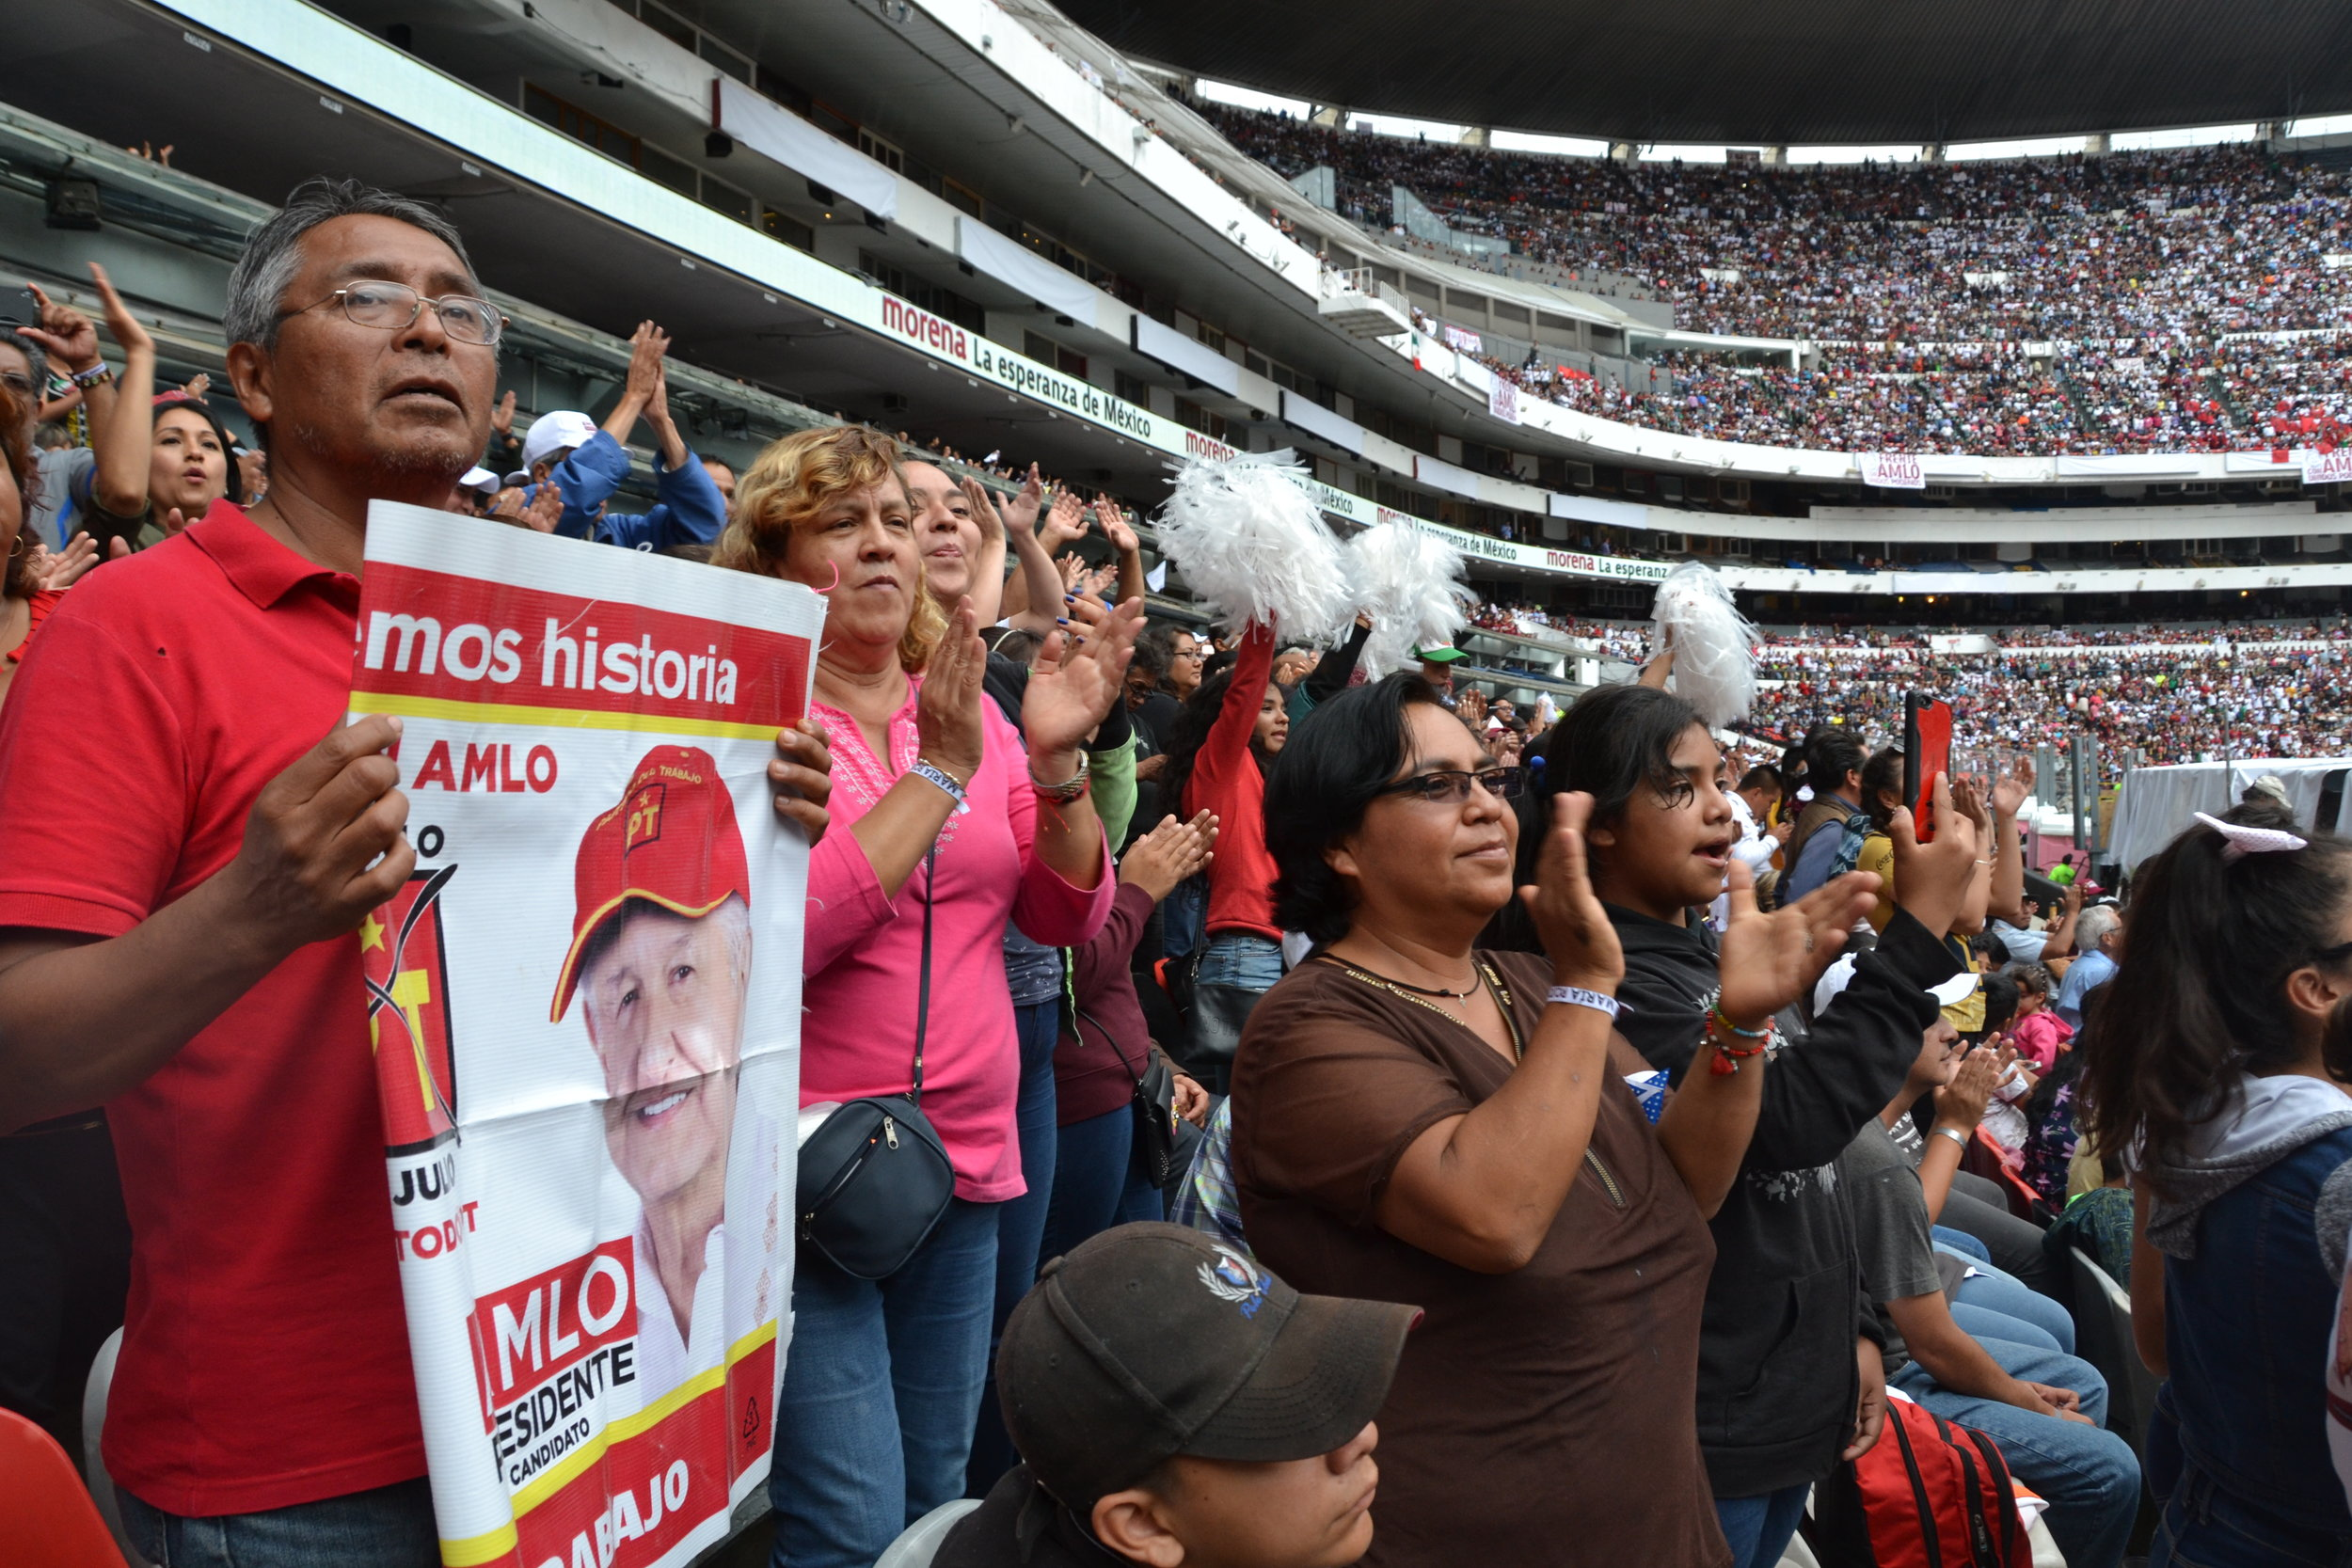 Supporters cheer at a rally for Lopez Obrador in Mexico City, June 27, 2018.  Photo: Oscar Lopez.